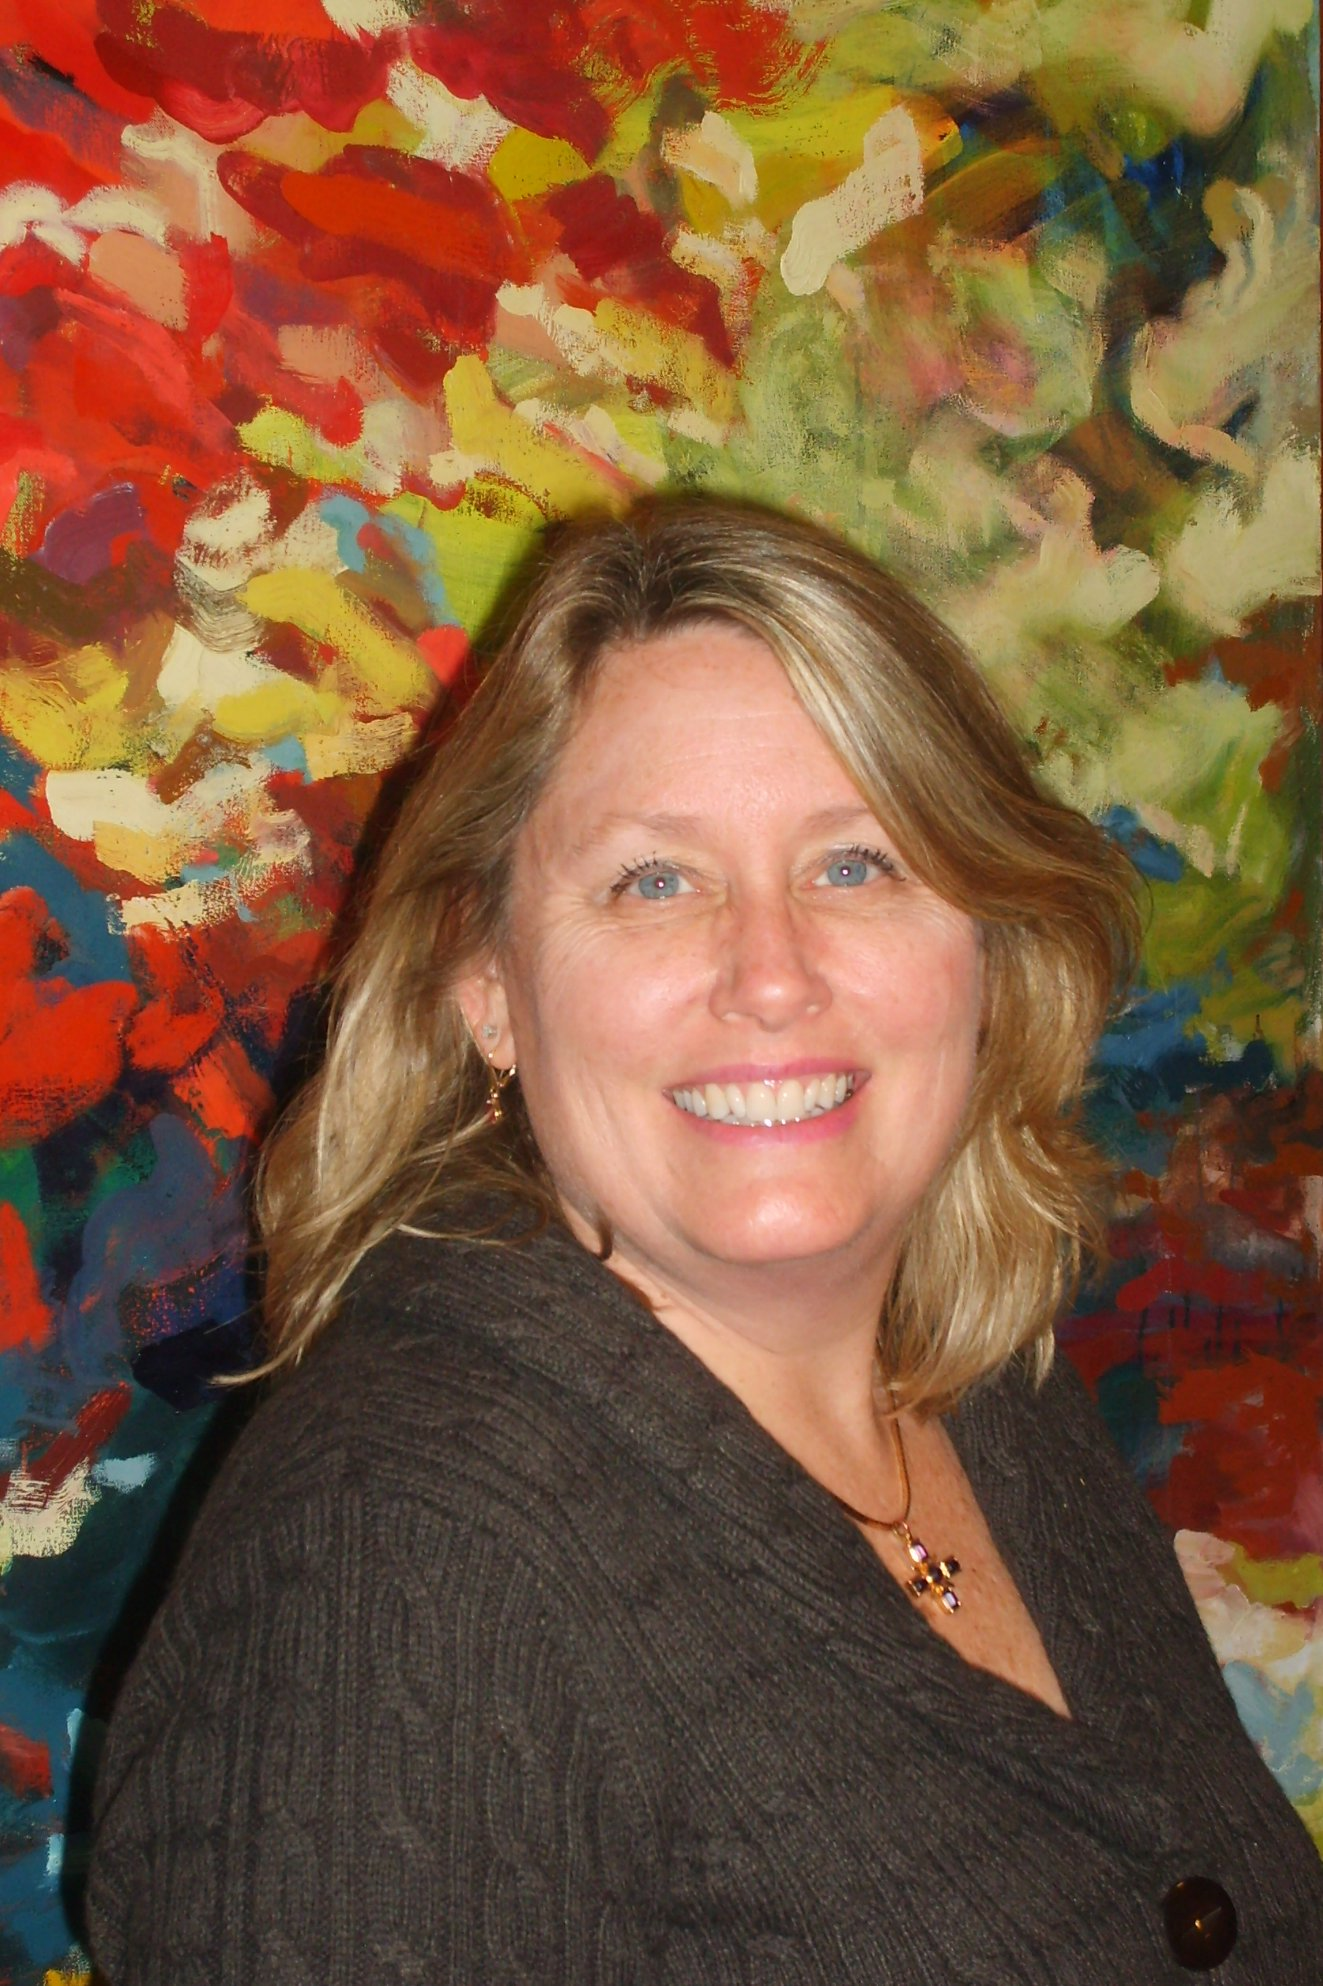 Carrie Carr - CARRIE CARR, a resident for over 21 years, was first elected to the Library Board in 2013. A former Barrington Junior Women's Club President and Treasurer, Carrie has been instrumental in her role as Treasurer for the Library Board in streamlining the Library District's financial reporting and implementing an improved investment portfolio. Her background with a large global consulting company in human resource development was key to the successful executive director search the Library Board conducted in 2017-2018. Carrie is particularly cognizant of the importance of keeping and recruiting talented library staff, and then supporting the staff's ideas with the proper financial resources and a creative working environment that the Barrington Area Library has carefully curated.